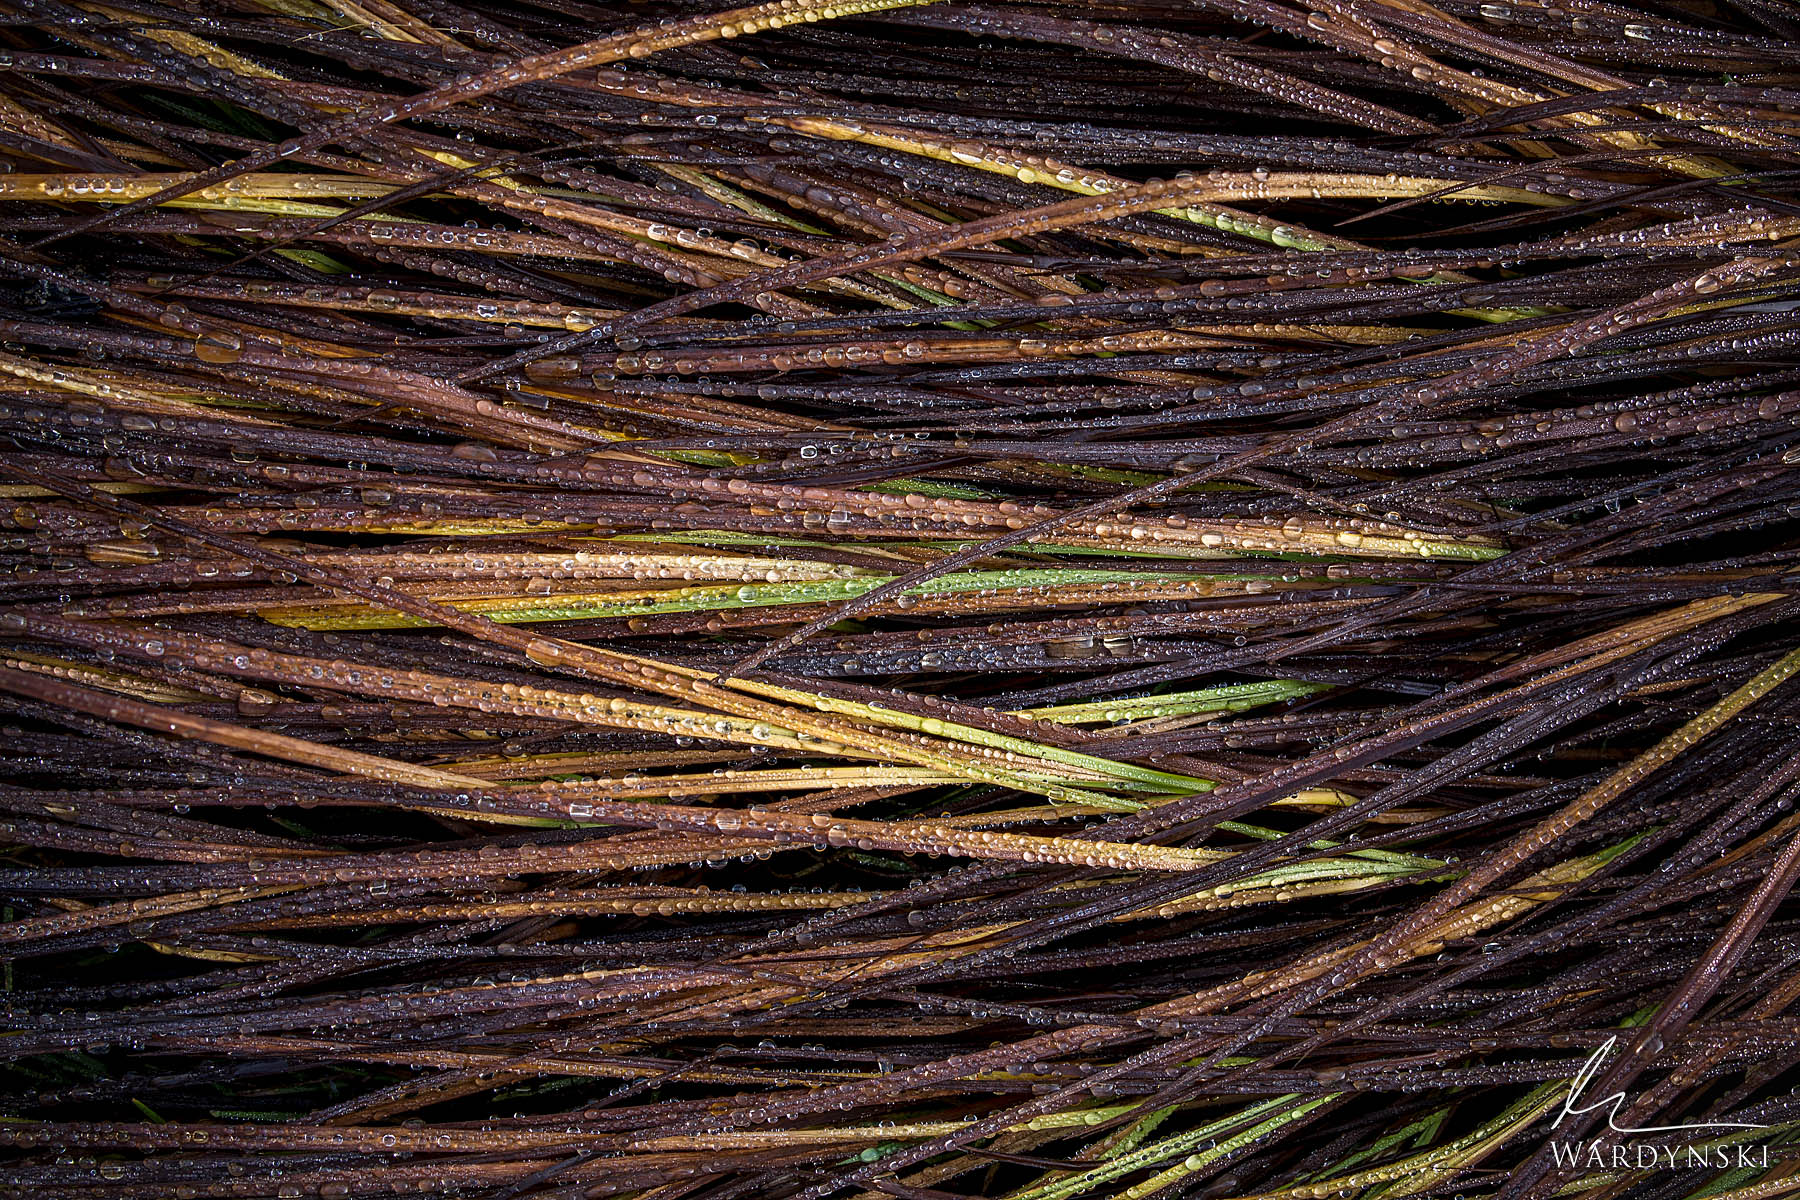 Fine Art Print | Limited Edition of 25  Tufts of river grass collect drops of dew on a chilly autumn morning in Yosemite Valley...